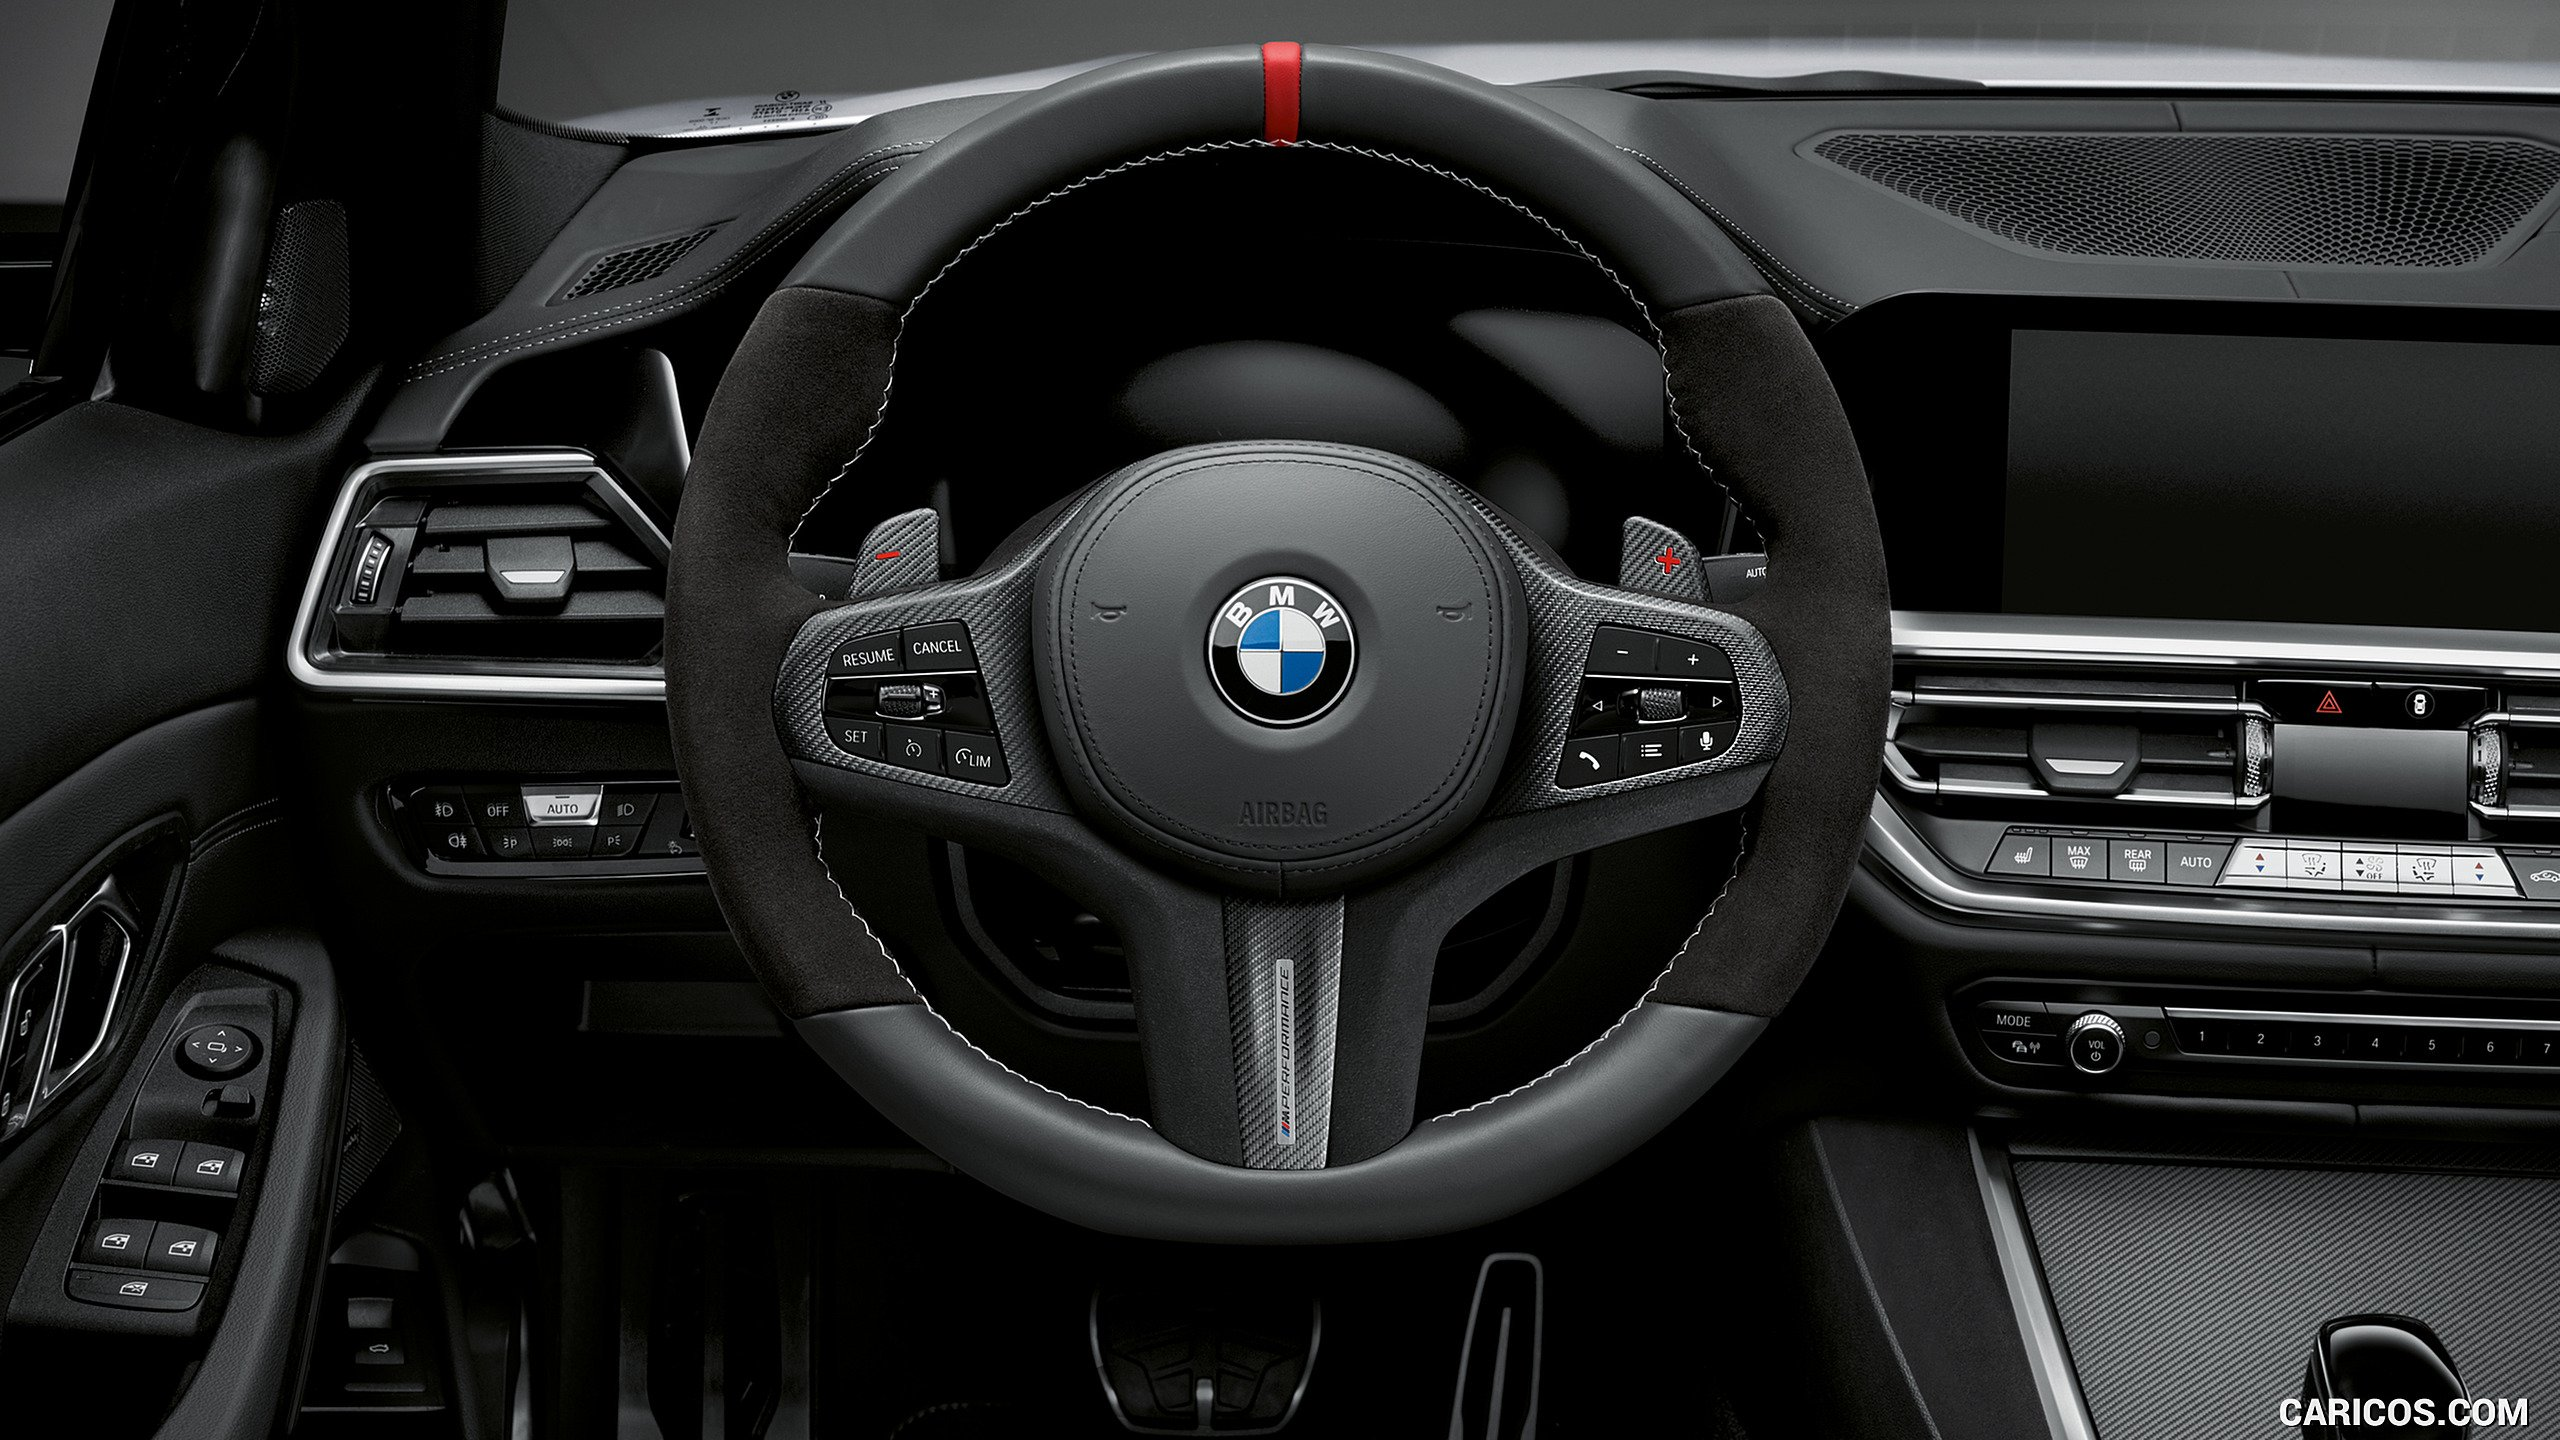 2019 BMW 3 Series M Performance Parts   Interior HD Wallpaper 17 2560x1440